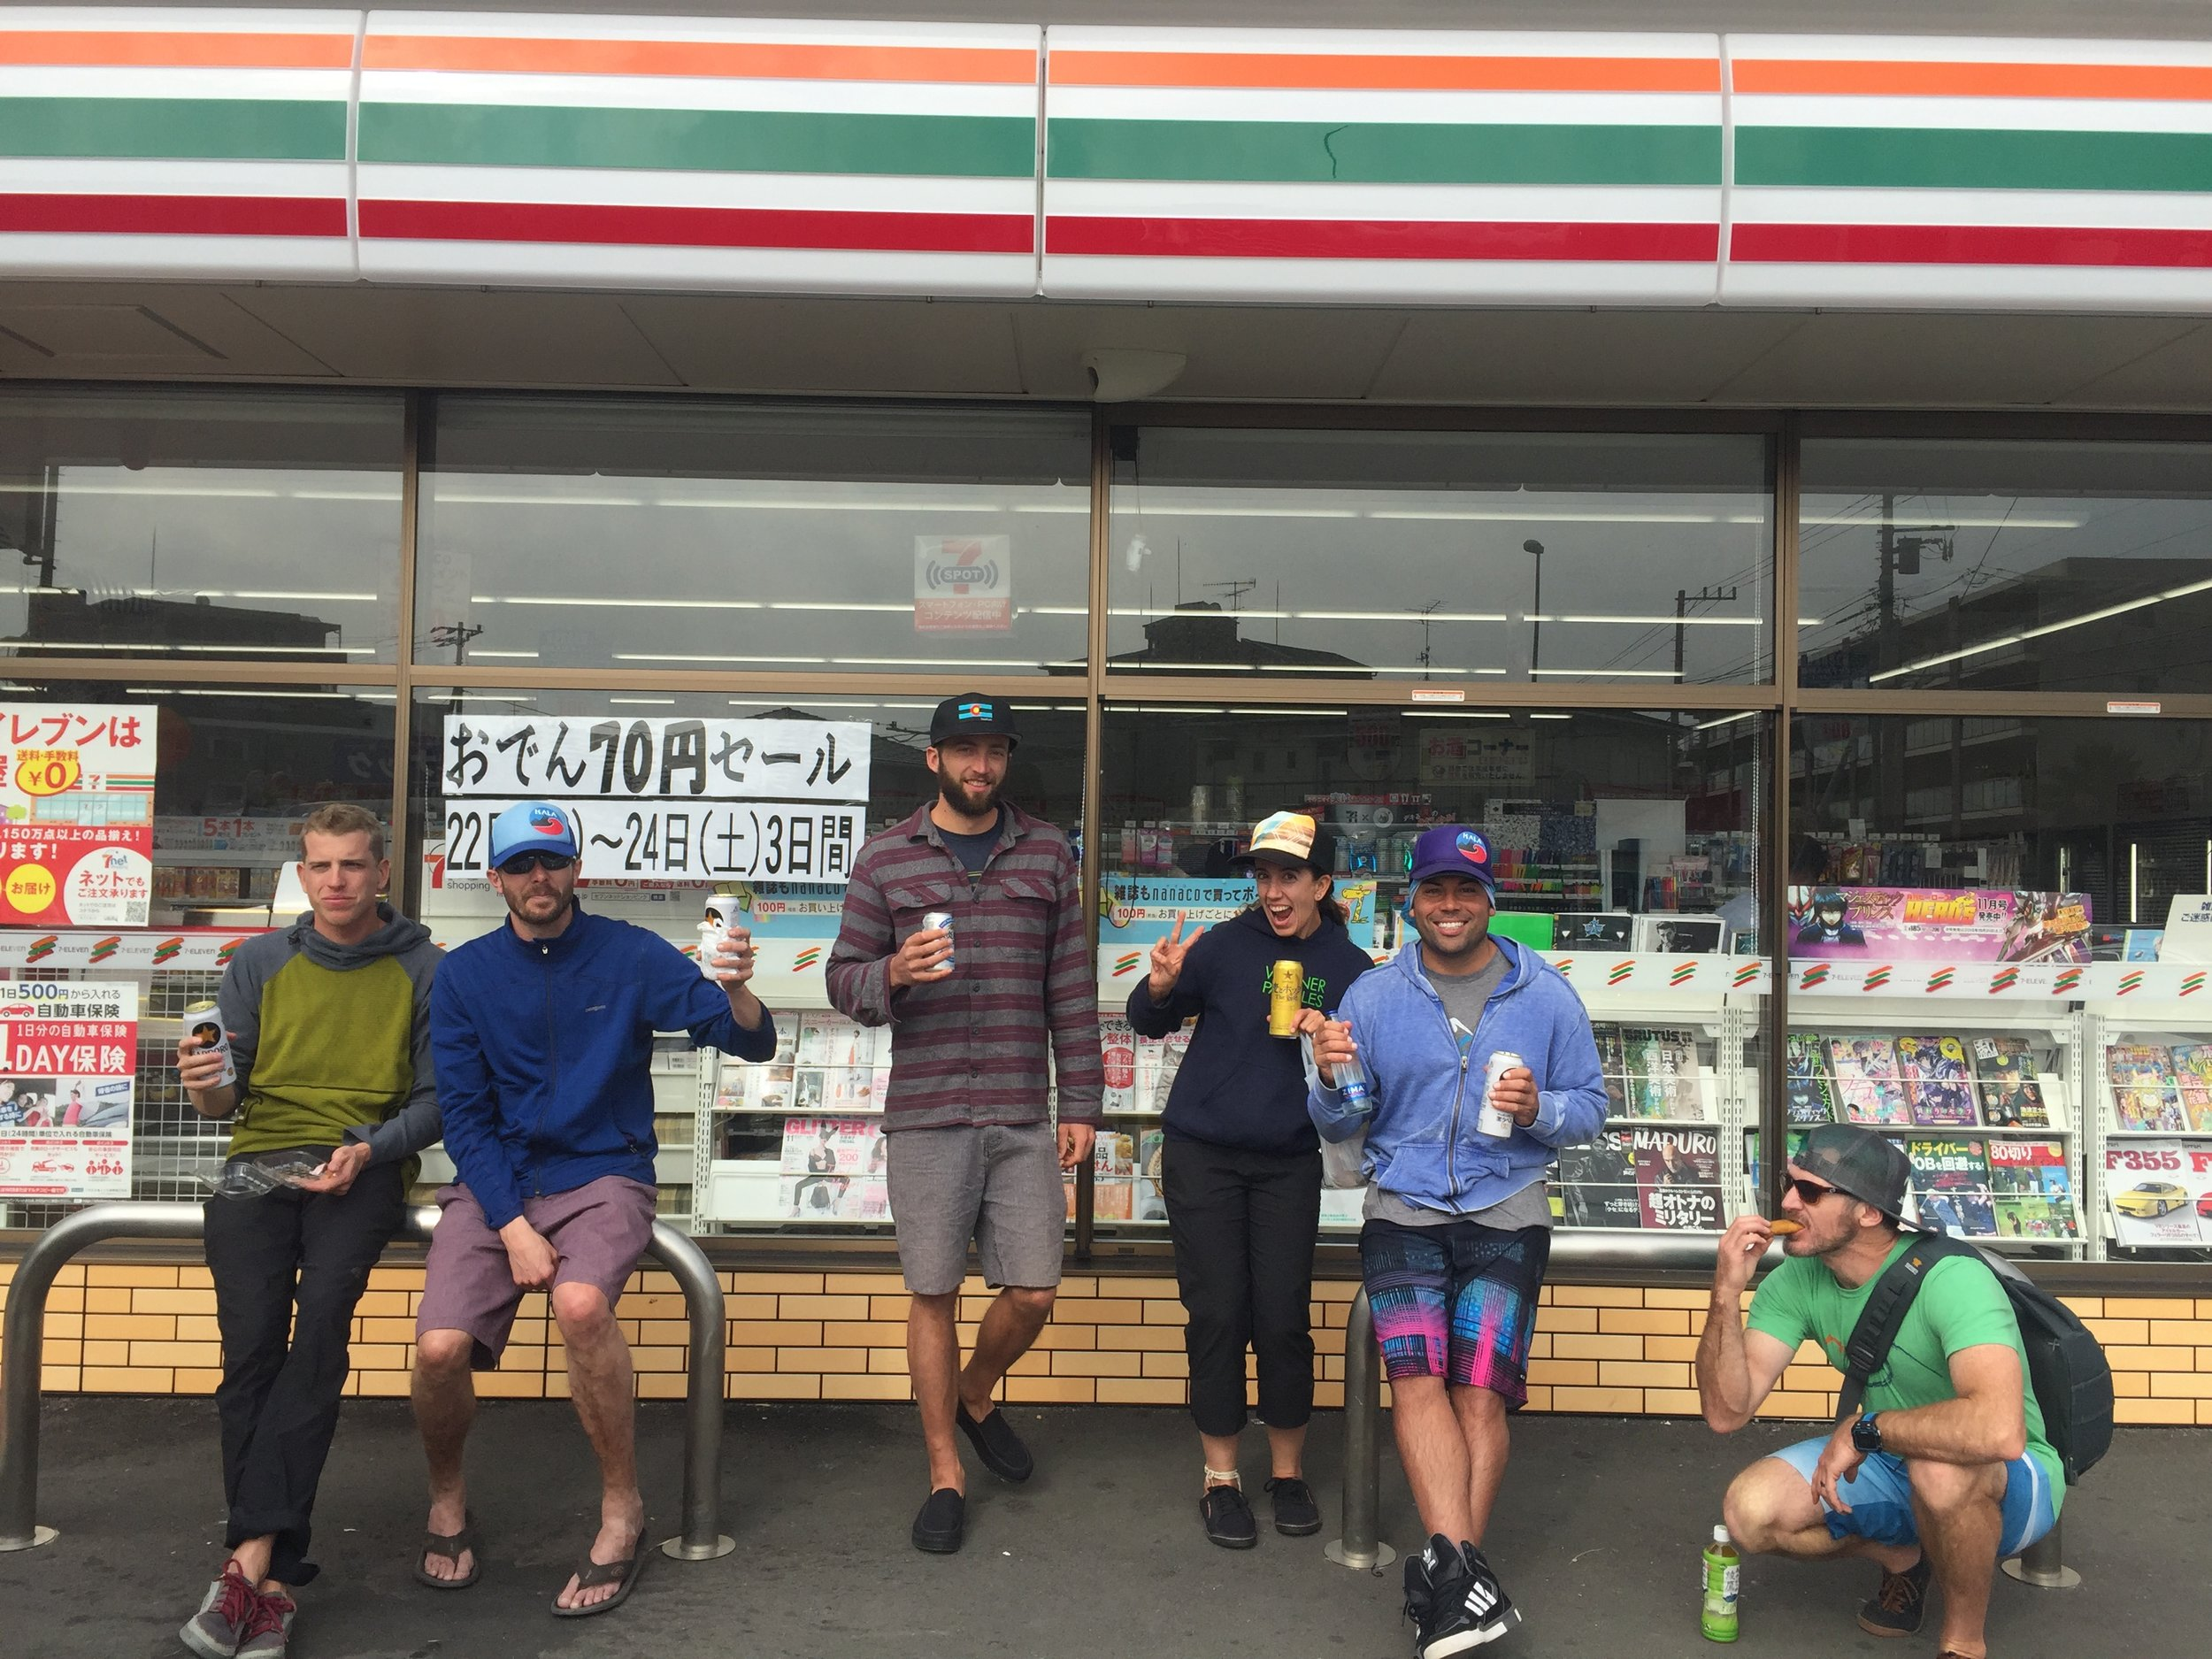 The gang loitering in front of 7-Eleven.